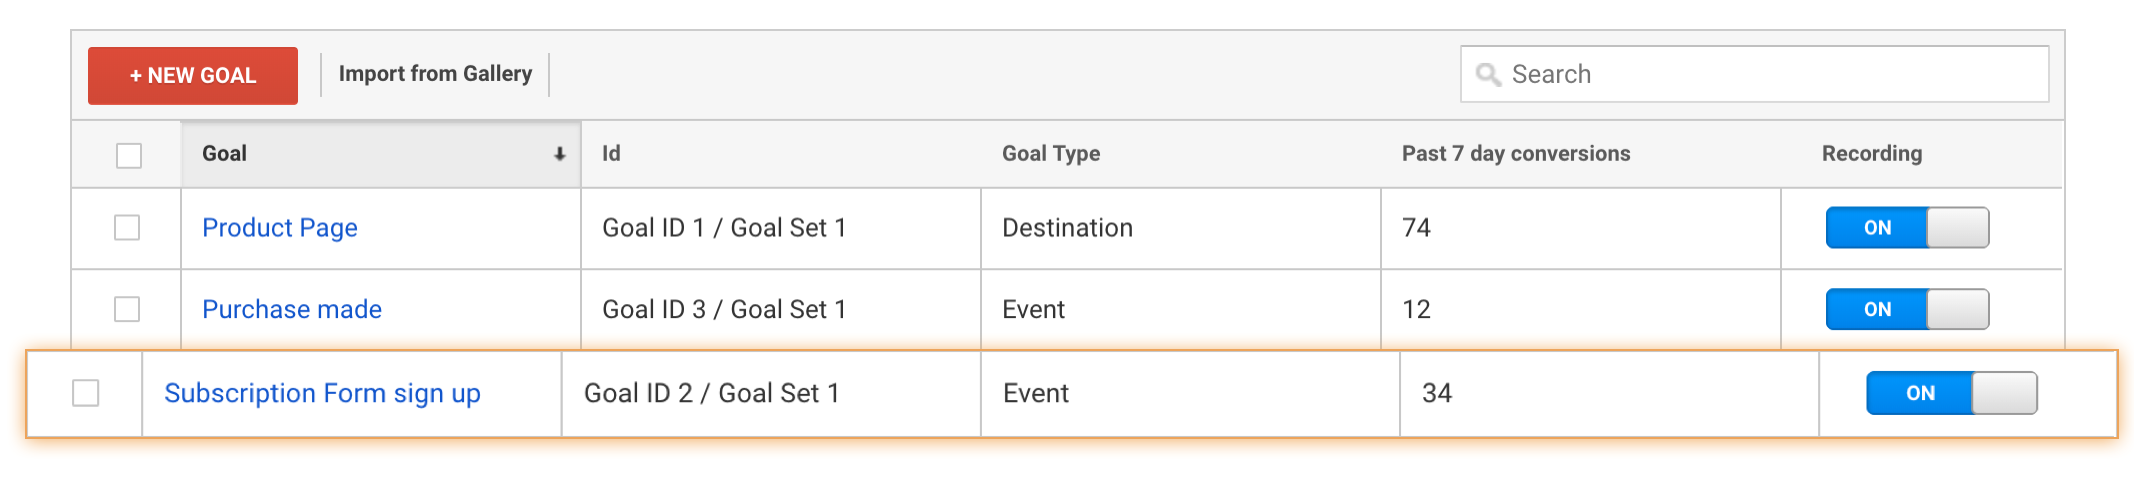 campaign goals in Google Analytics